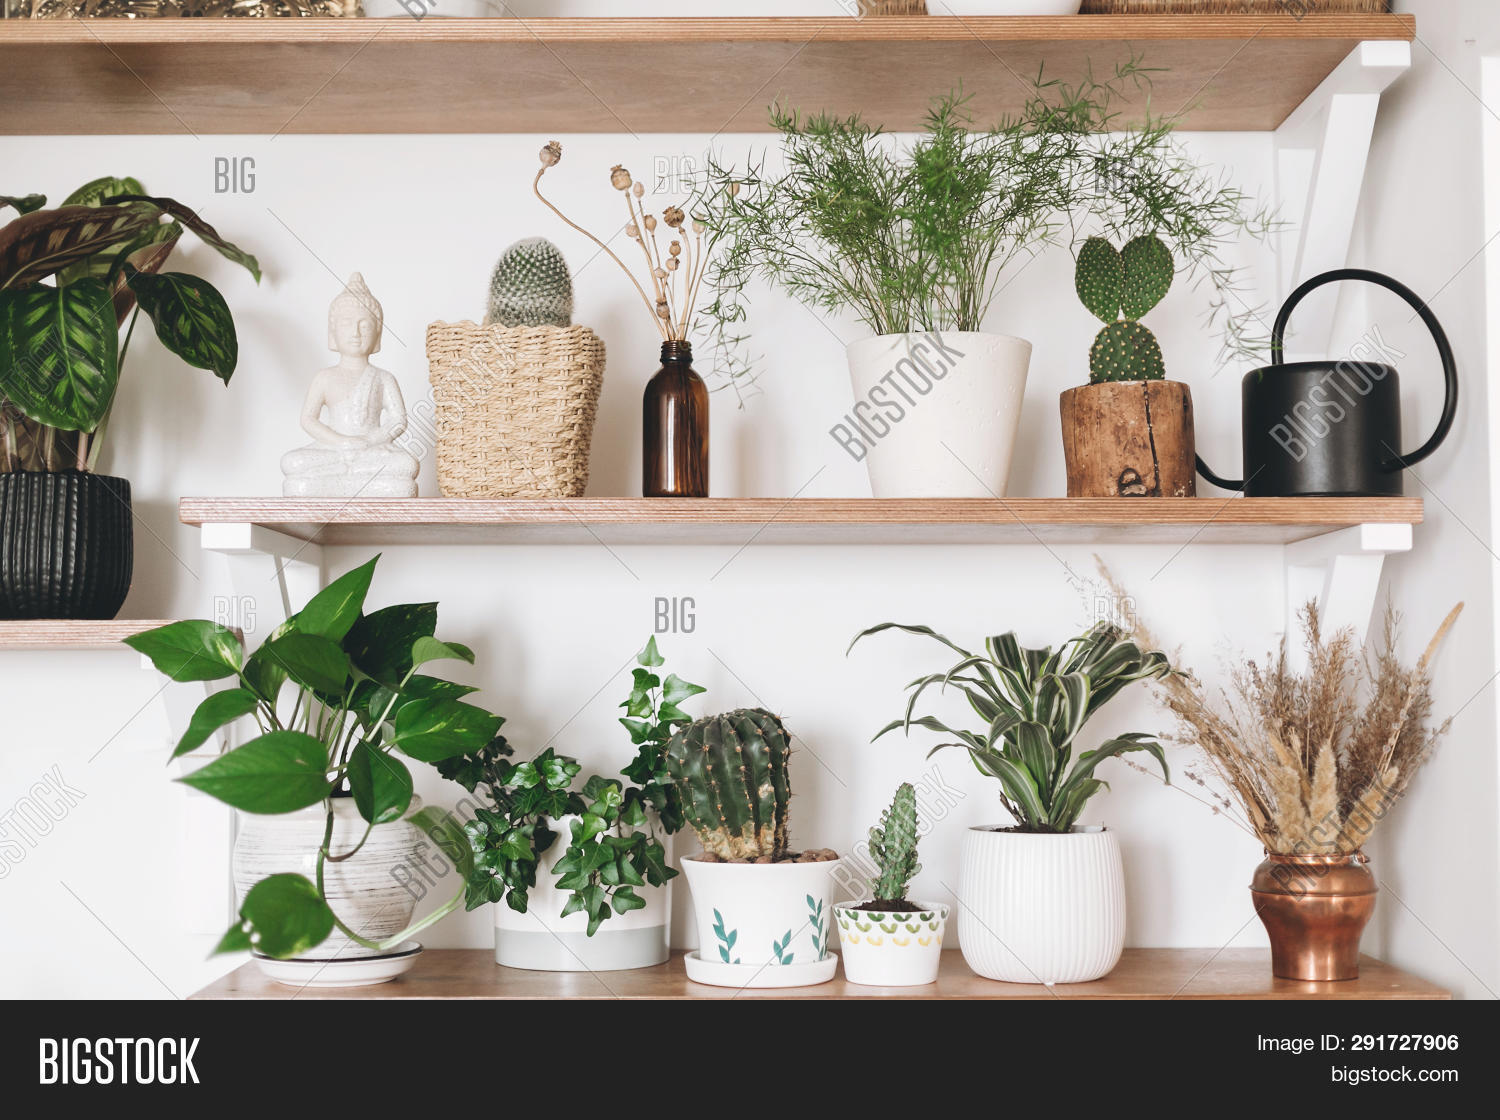 apartment,asparagus,black,boho,botany,cactus,calathea,can,concept,decor,decoration,decorative,design,dracaena,dried,epipremnum,floral,flowerpot,fresh,funnel,gardening,green,hipster,home,house,houseplant,indoor,interior,ivy,many,modern,natural,nature,palm,plants,pothos,pots,room,scindapsus,set,shelves,space,stylish,succulent,trendy,wall,watering,white,wildflowers,wooden